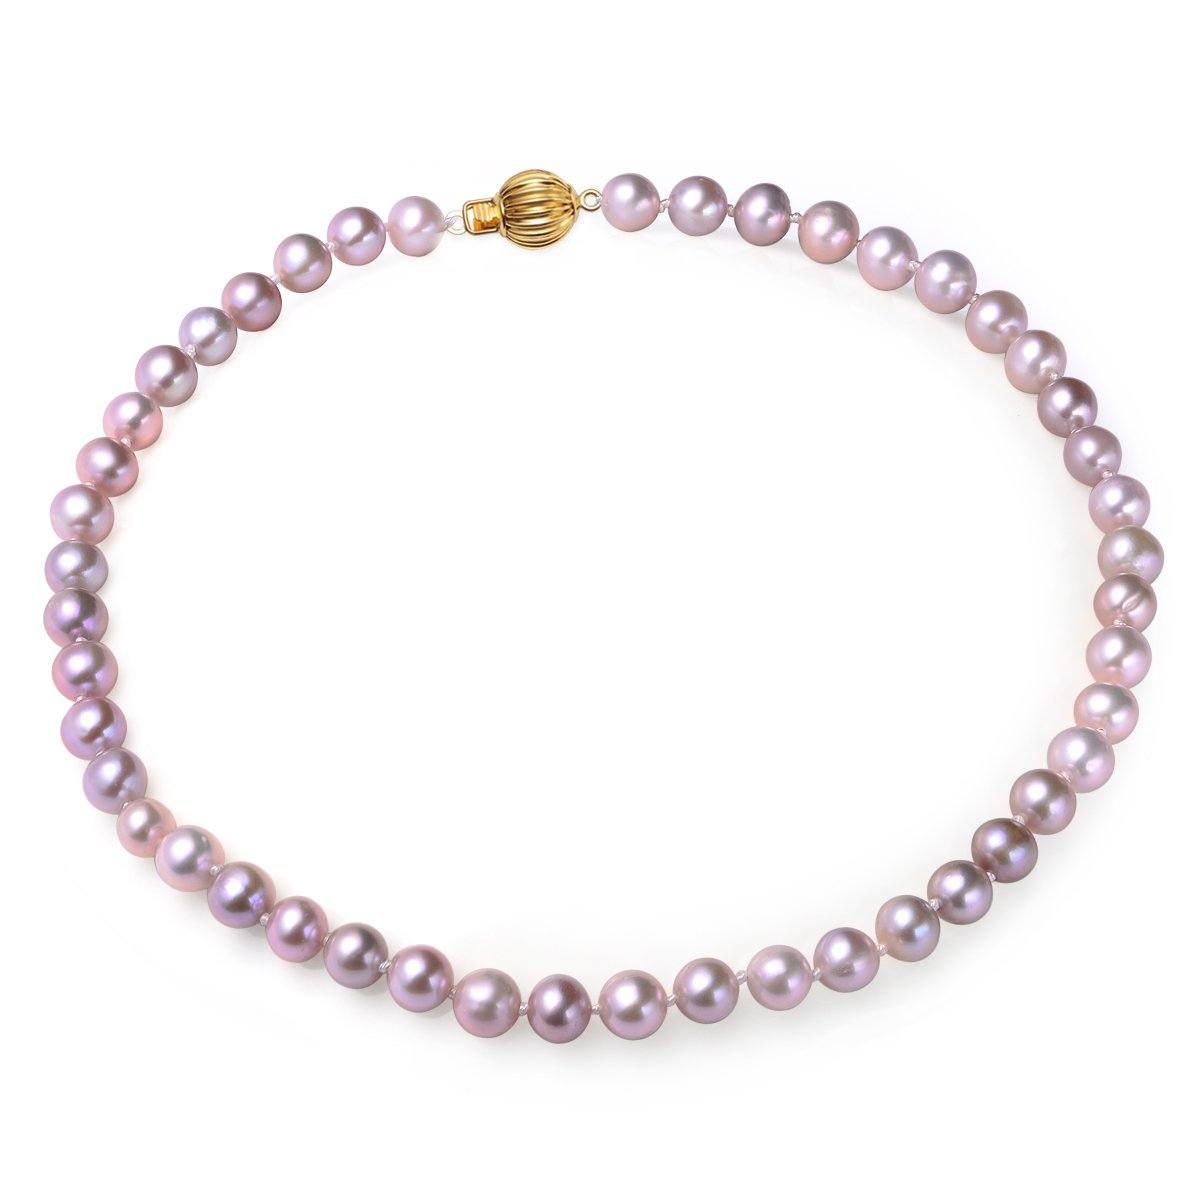 lavender 8-9mm aaa quality cultured freshwater pearl necklace with 14k solid gold fluted ball clasp